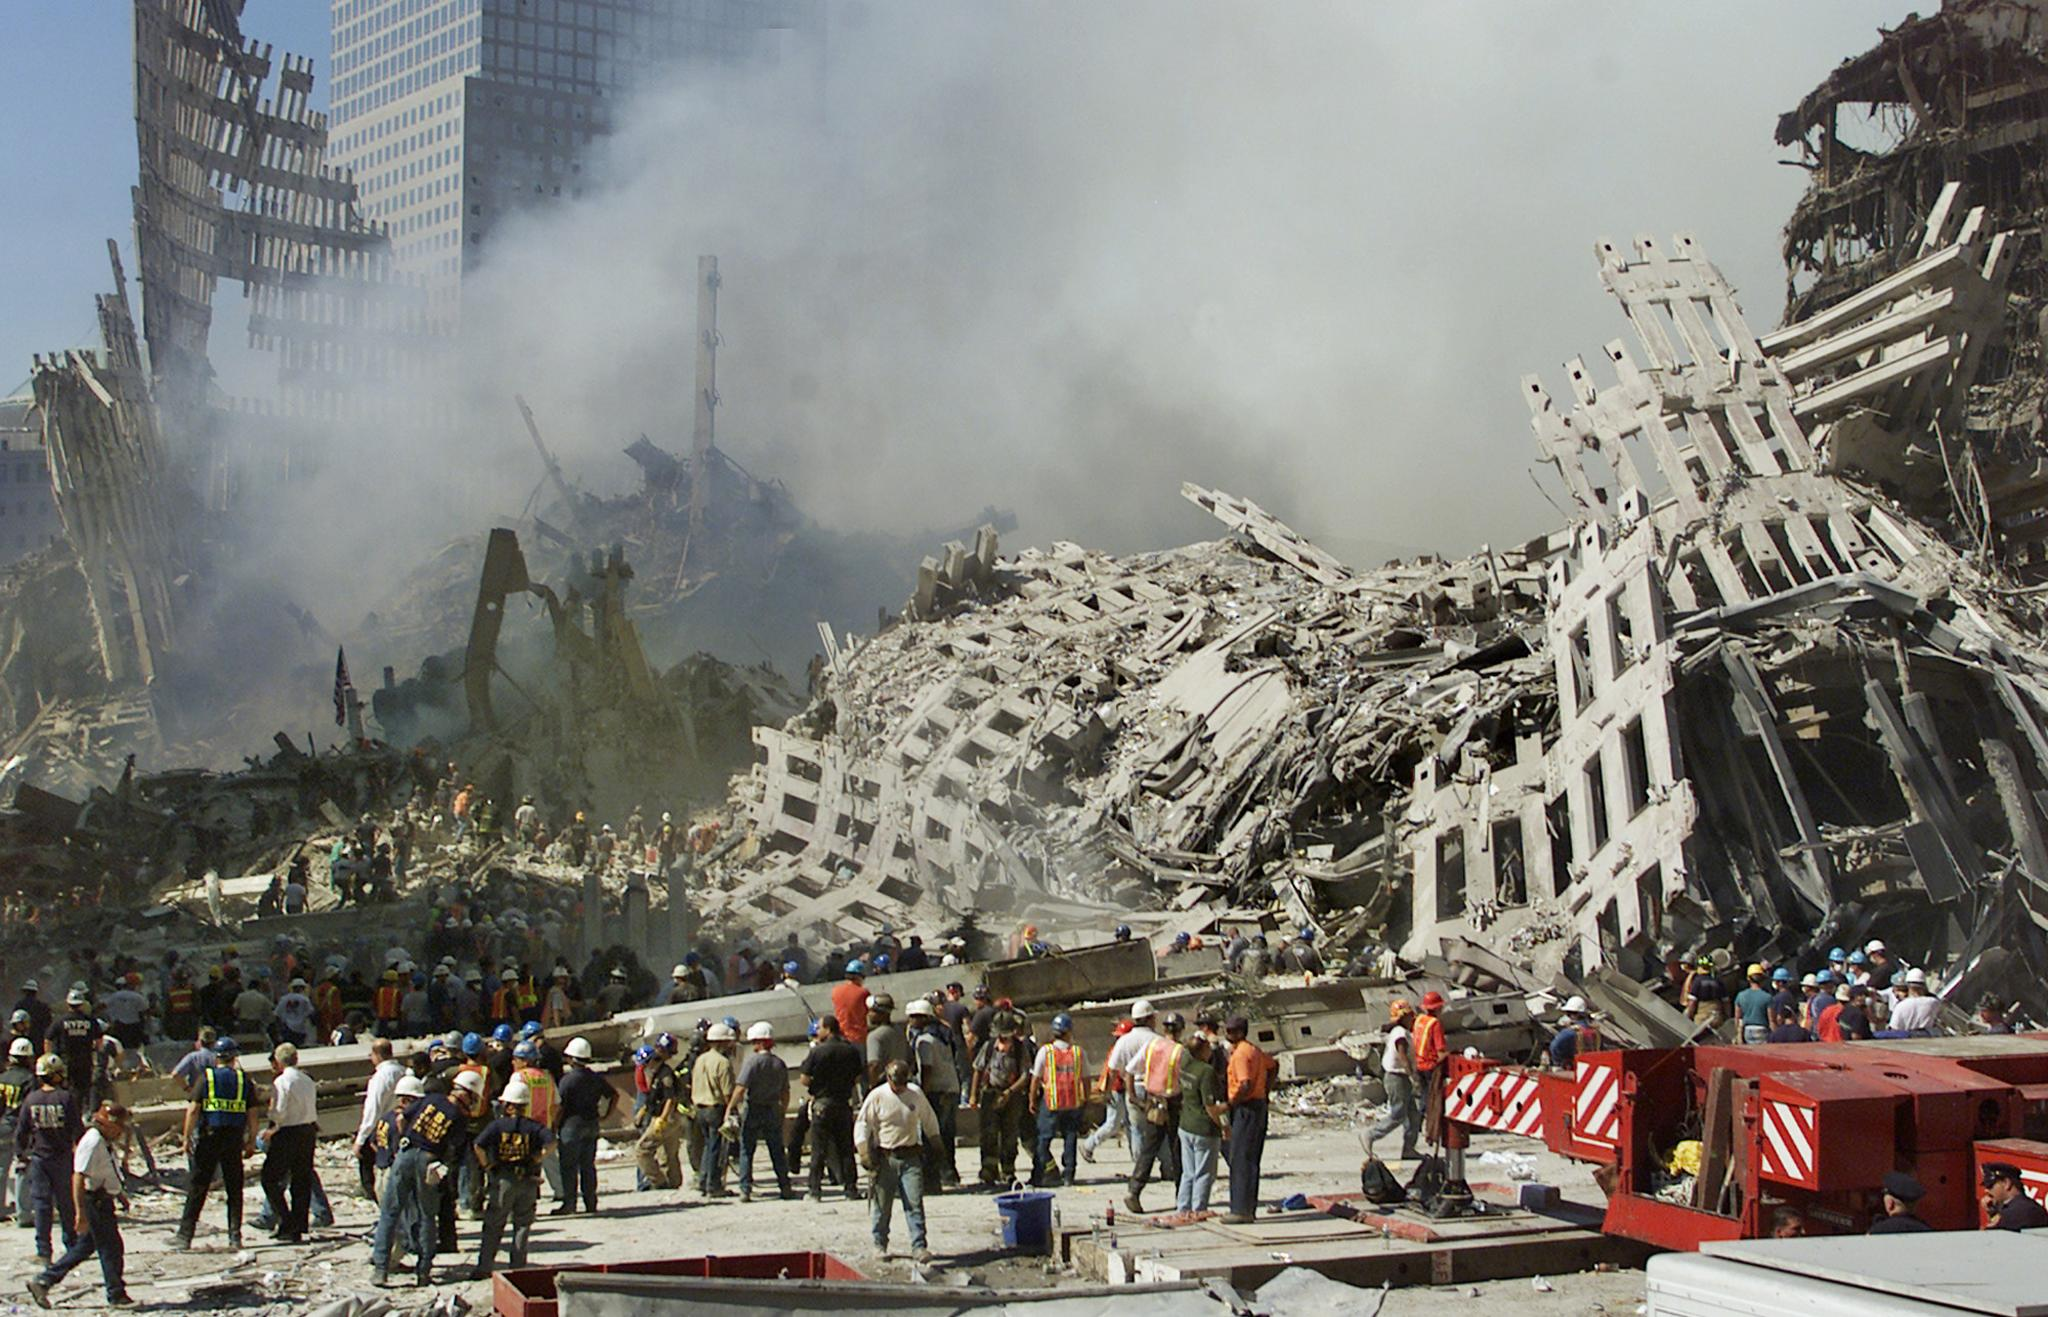 Rescue workers continue their search as smoke rises from the rubble of the World Trade Center 13 September 2001 in New York. (BETH A. KEISER/AFP/Getty Images)